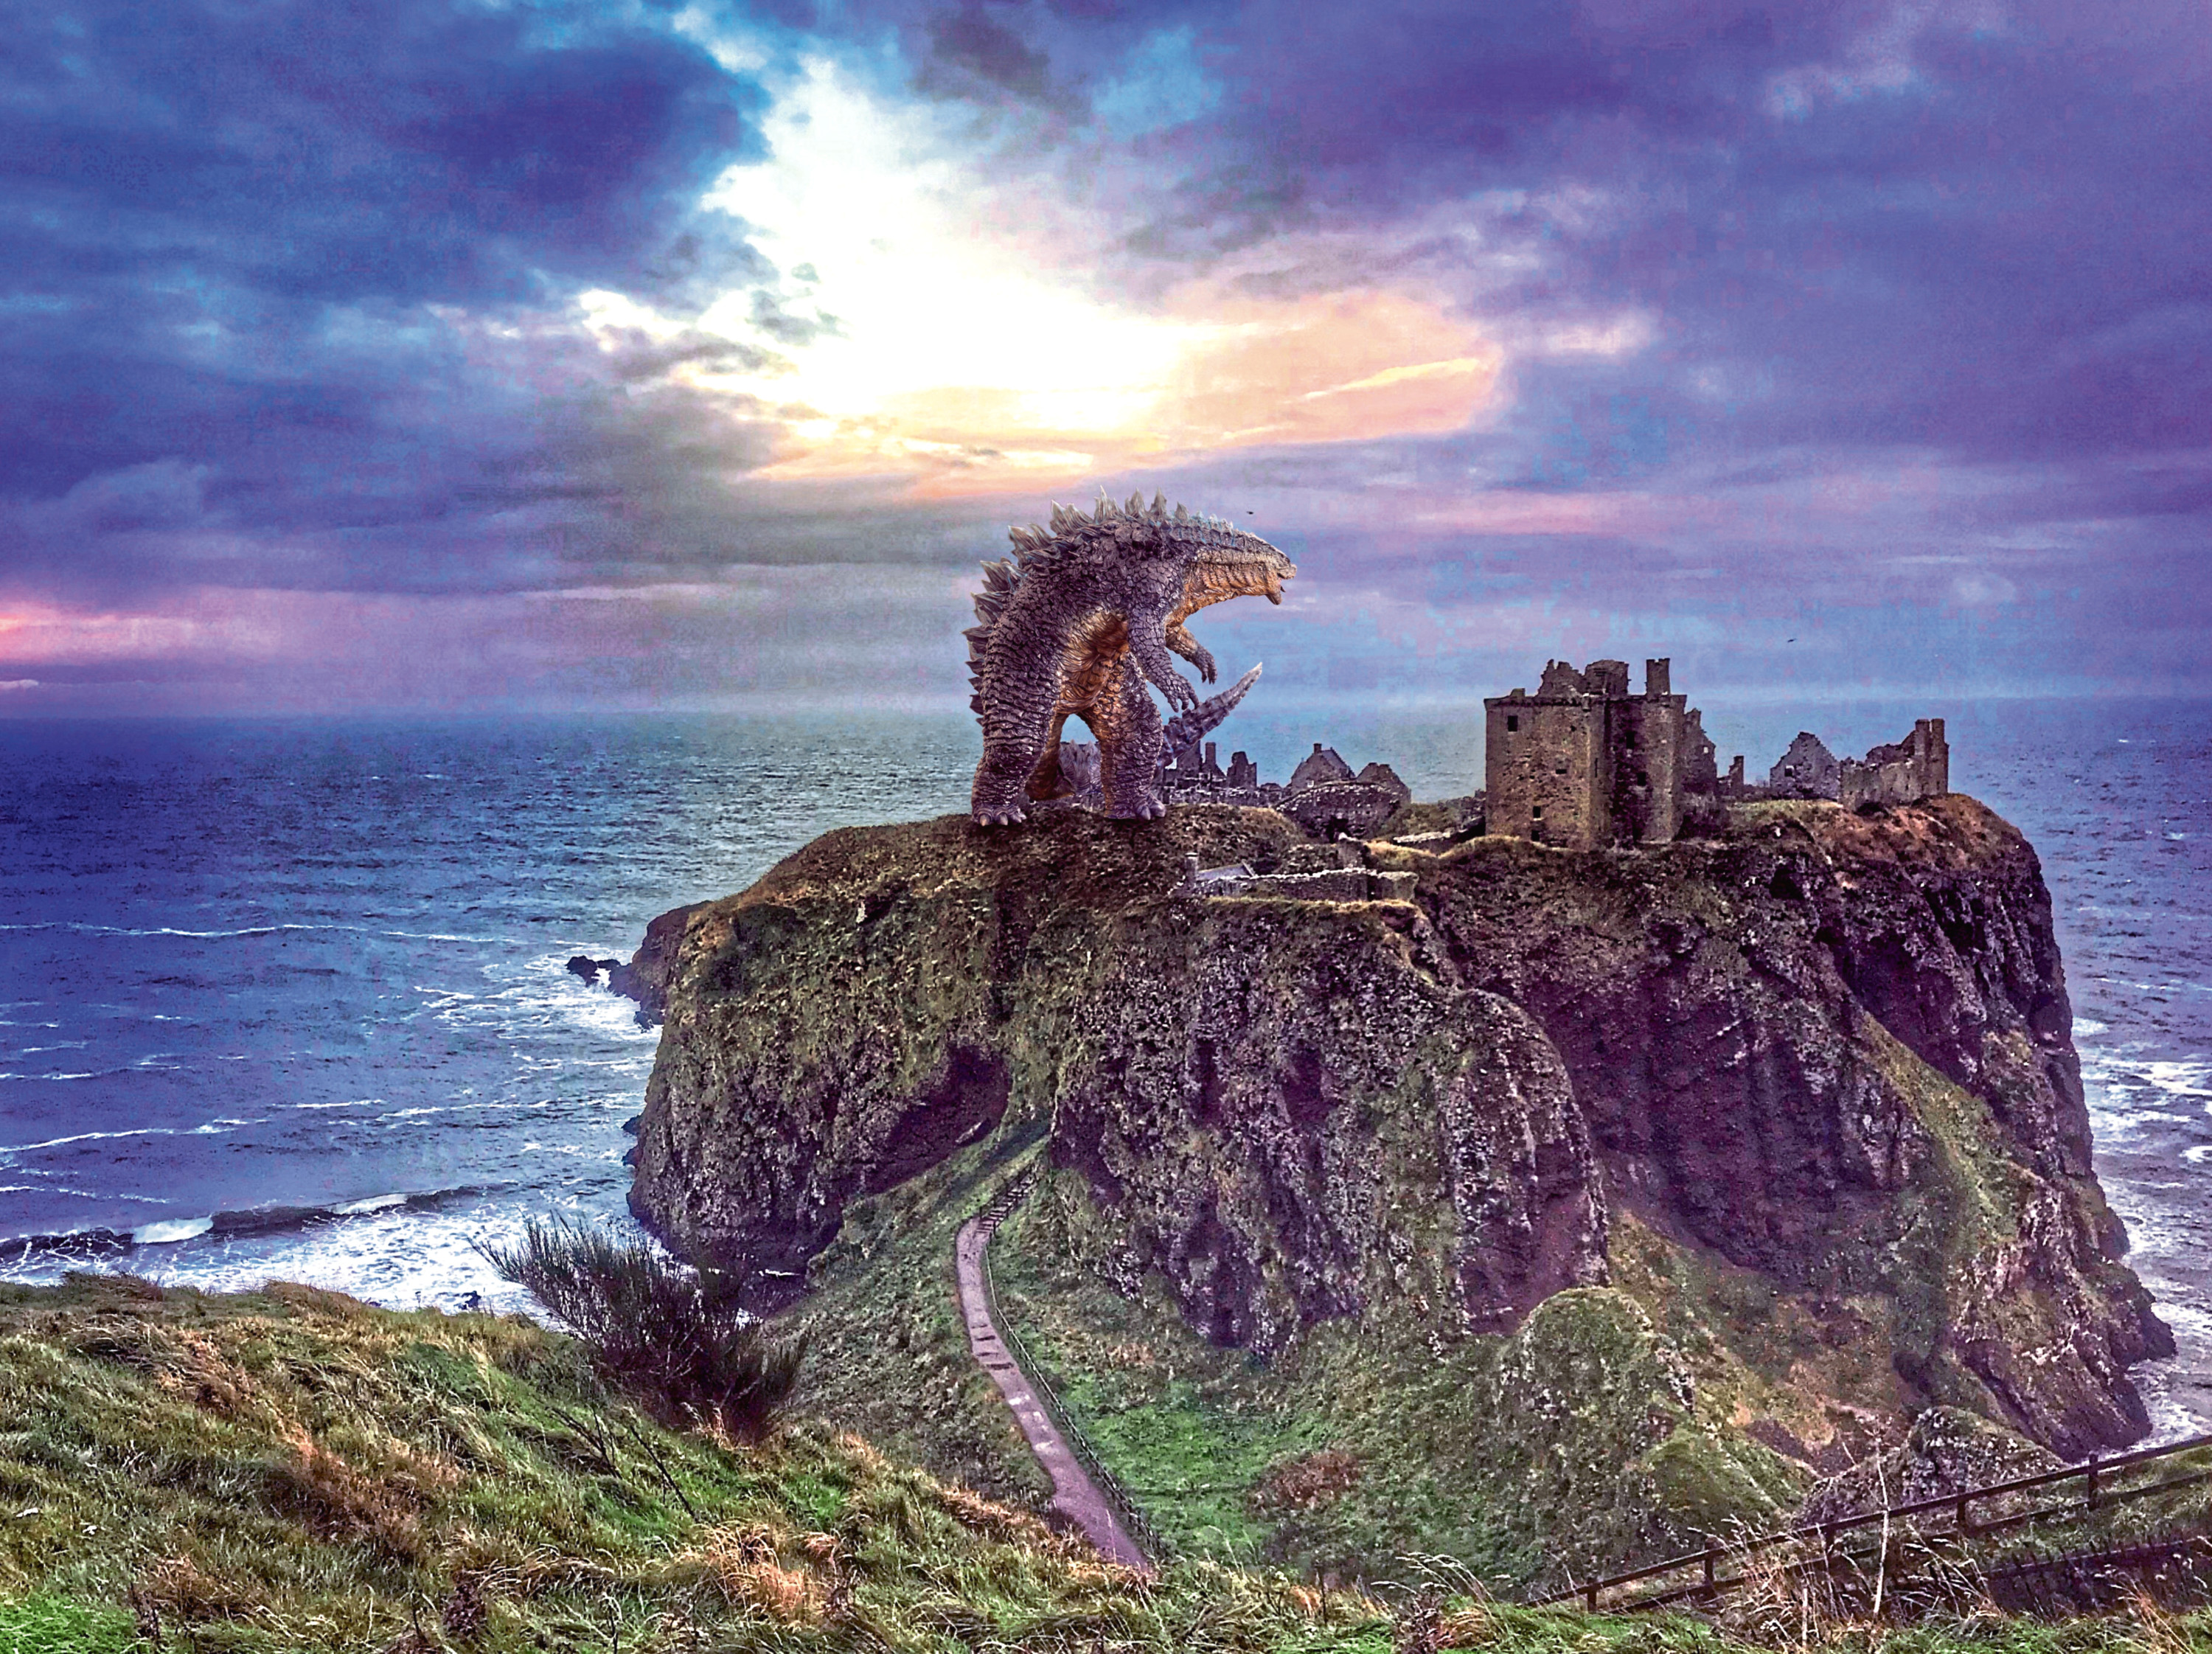 The King of Monsters enjoying the breathtaking scenery of Dunnottar castle during his 'visit' to the north-east